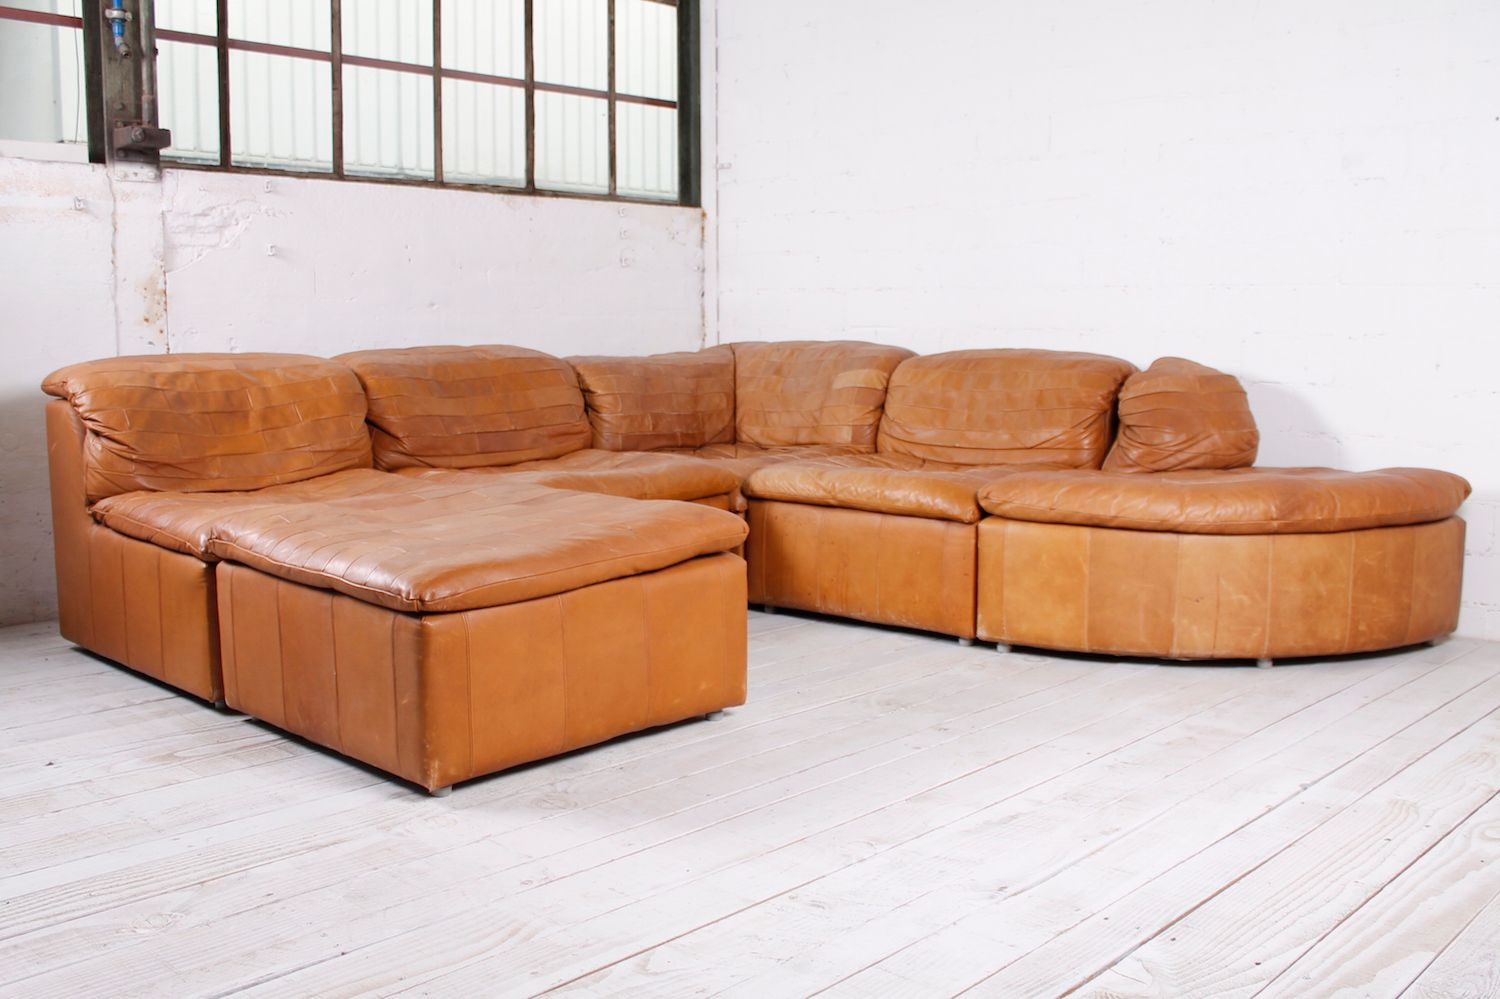 Modular patchwork sofa in leather 1970s for sale at pamono modular patchwork sofa in leather 1970s parisarafo Image collections